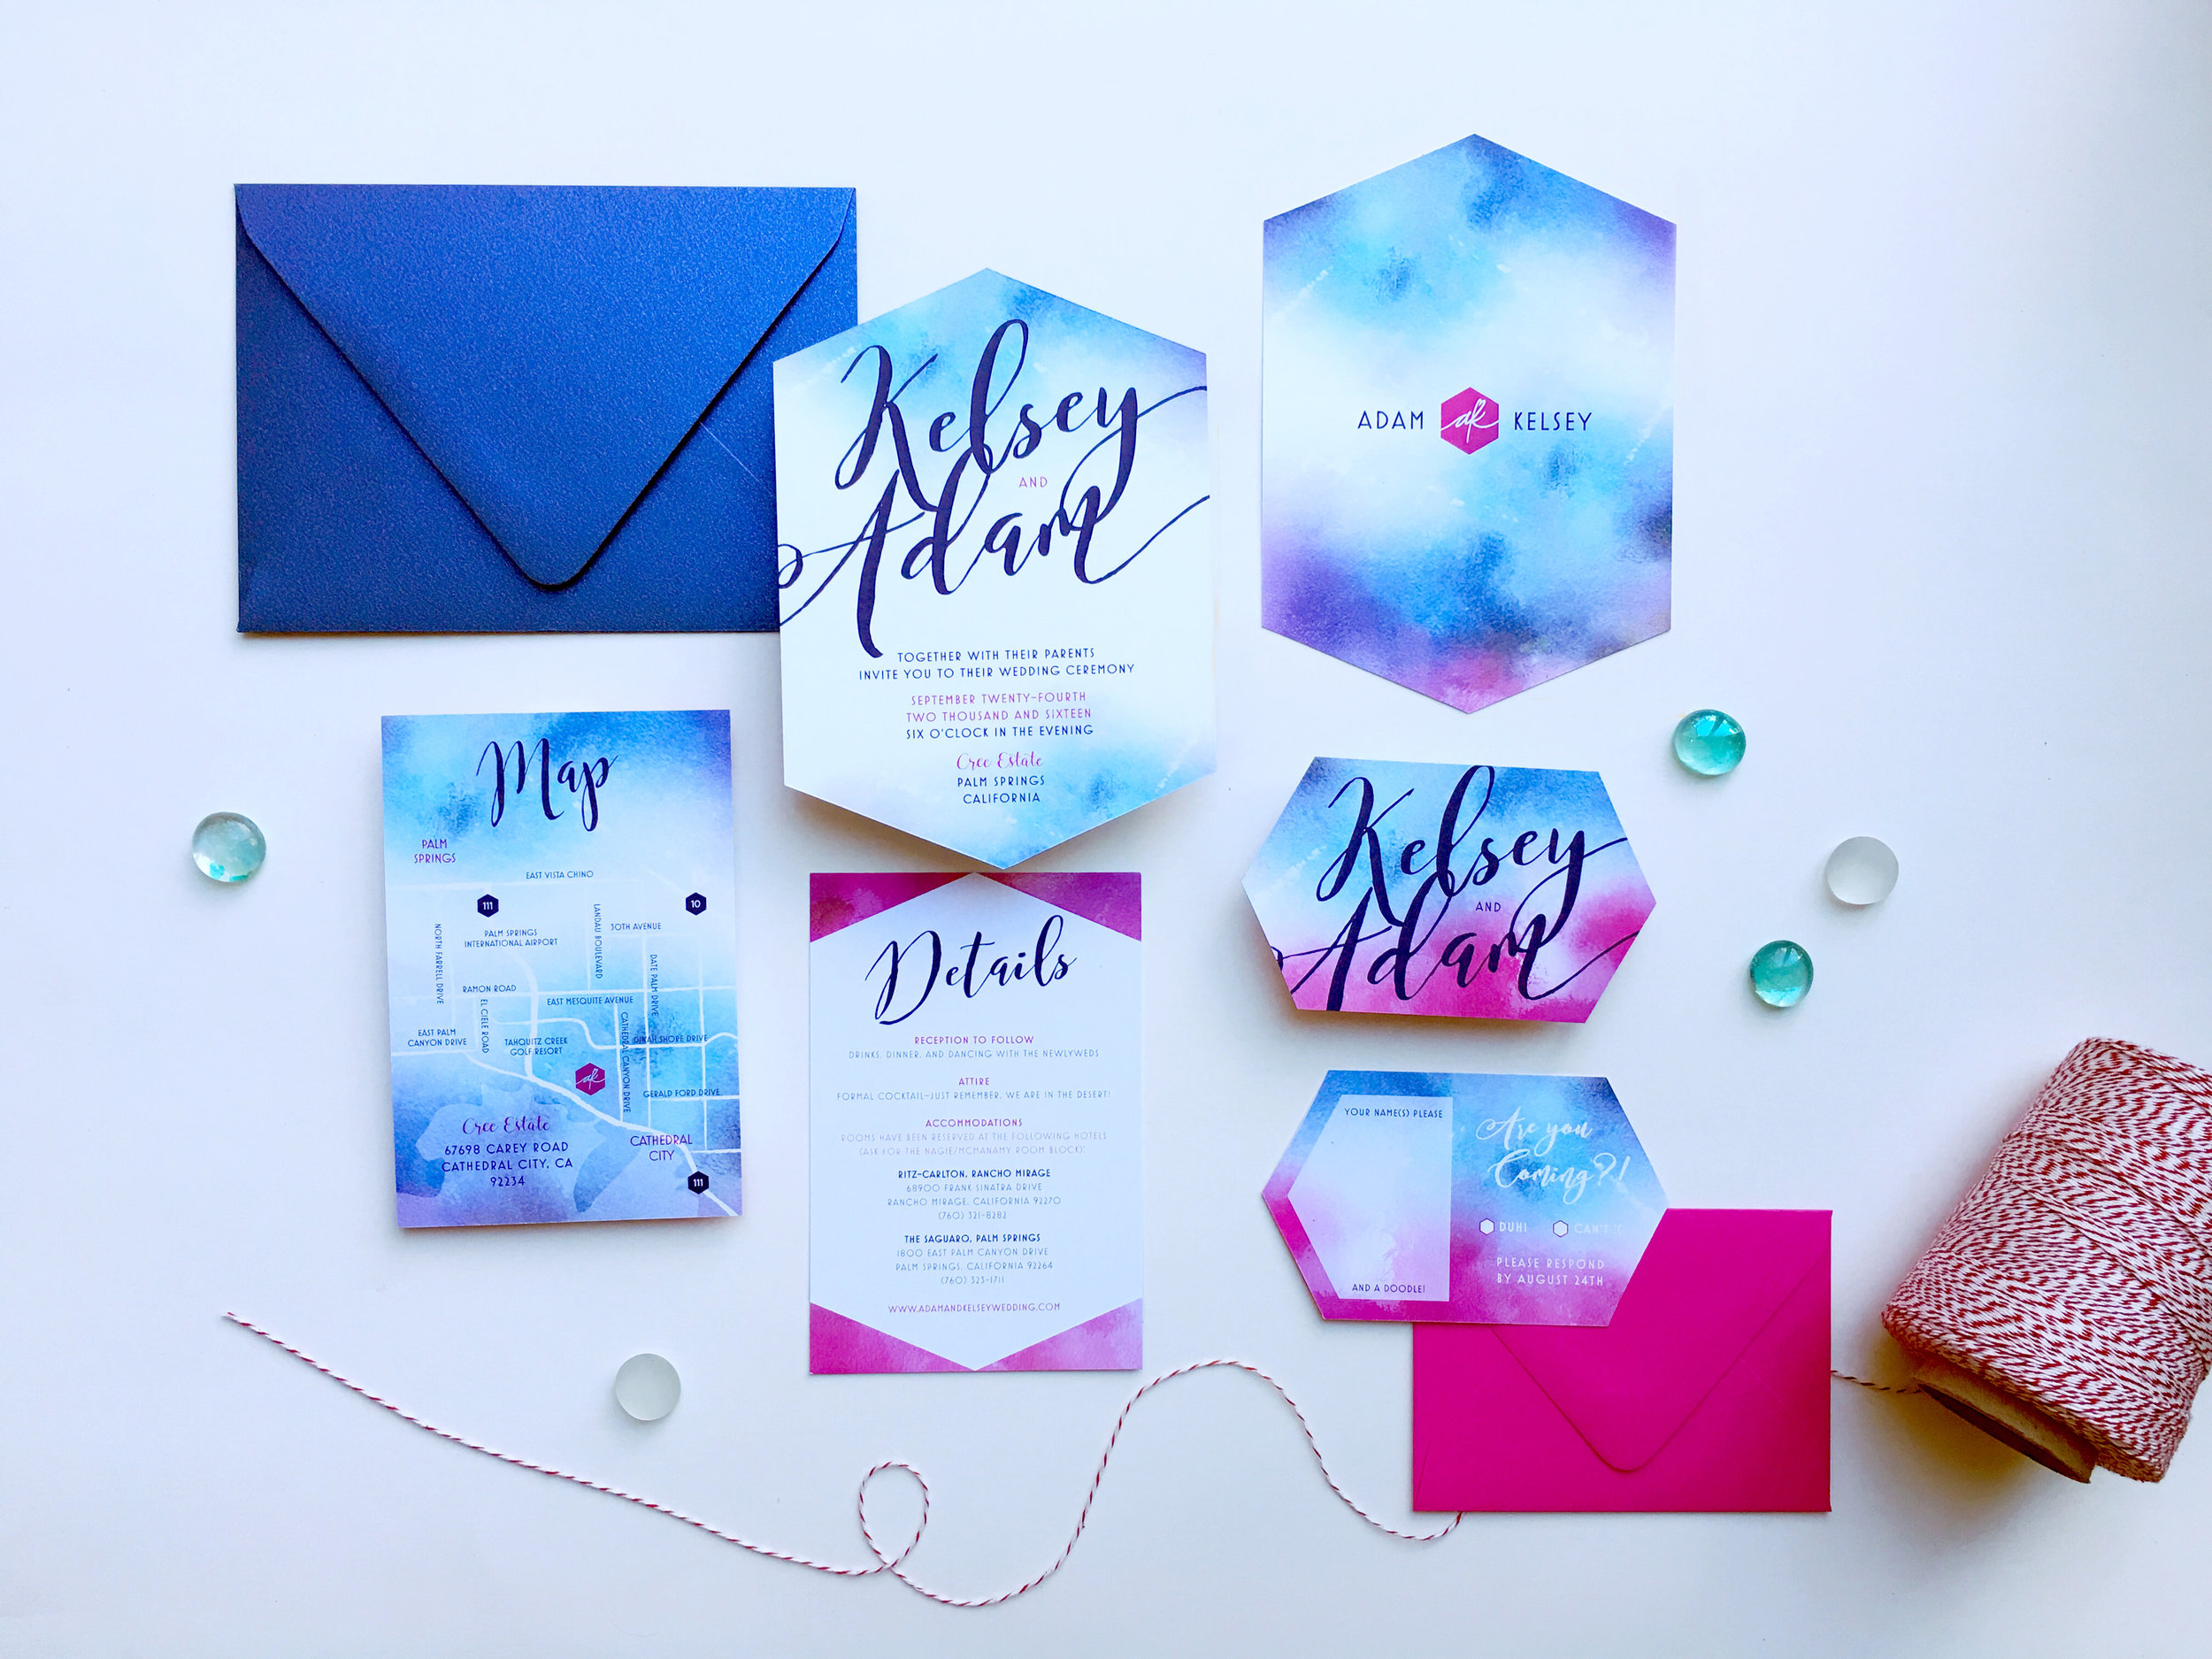 Rita-Alexis-Design-Kelsey-Whimsical-Entire-Wedding-Invitation-Suite-Airbrush-Blue-Pink.jpg